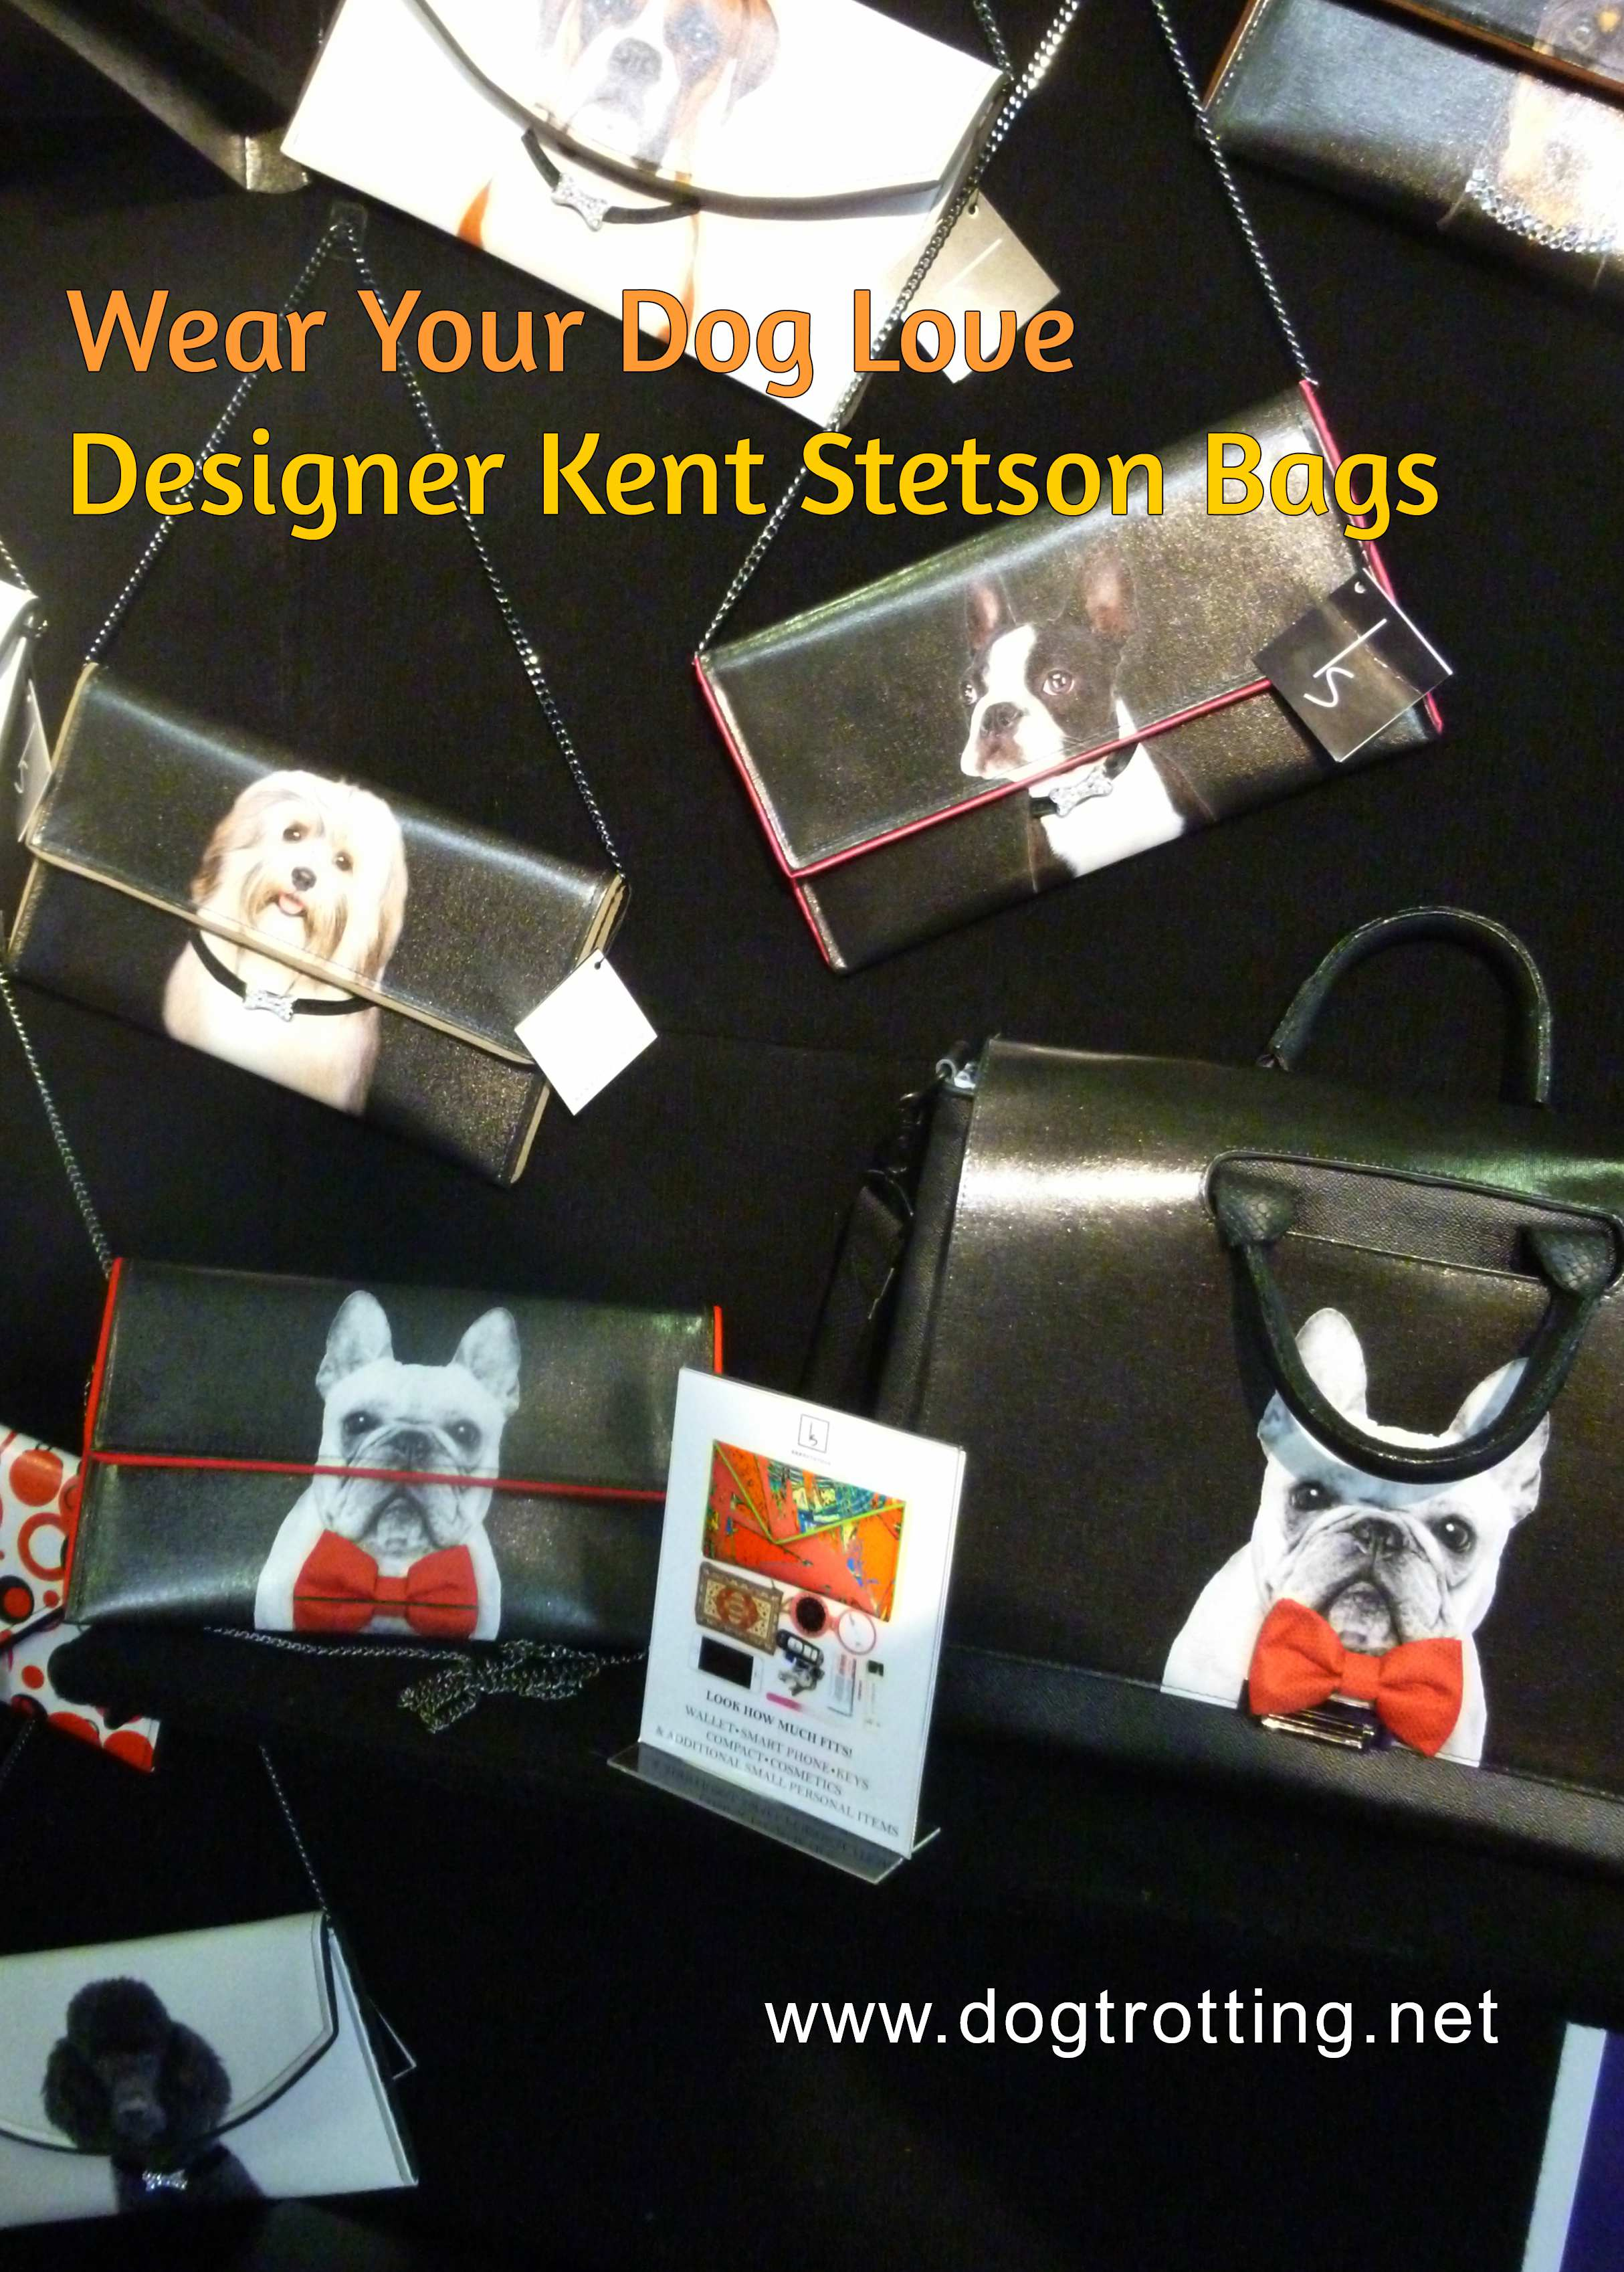 variety of Kent Stetson designer bags with dogs on them